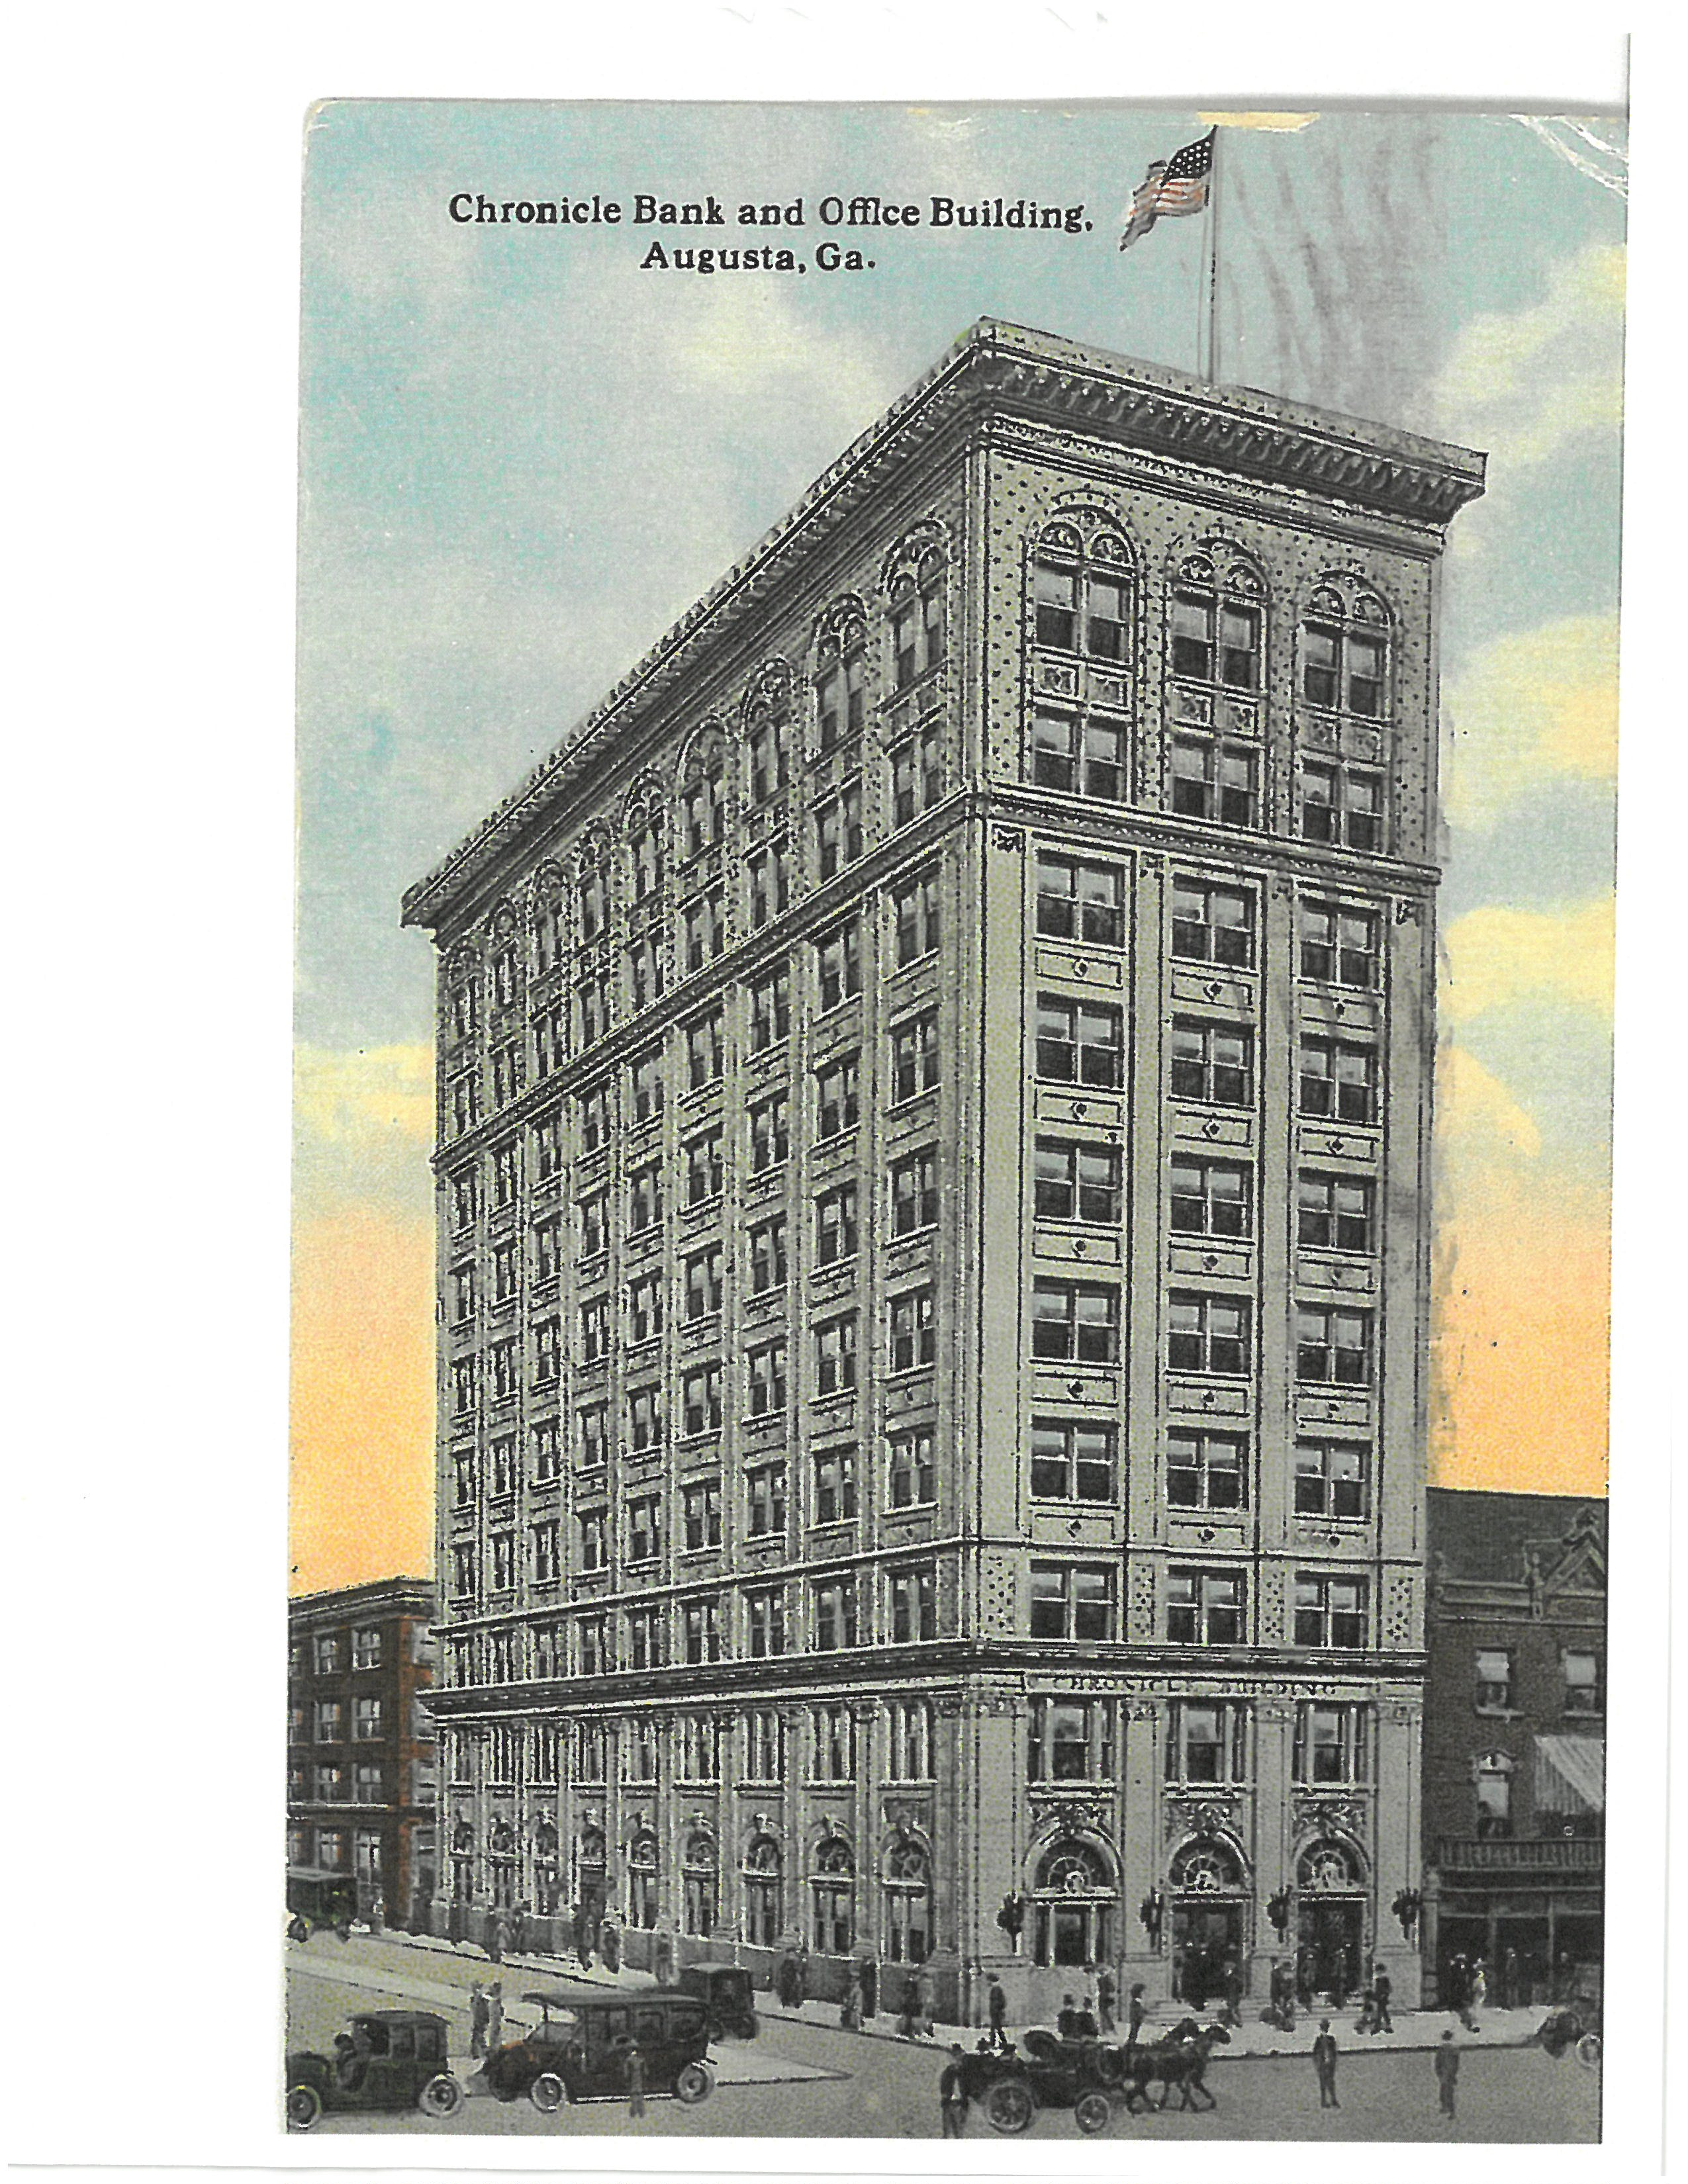 Artist's Rendering of Chronicle Building